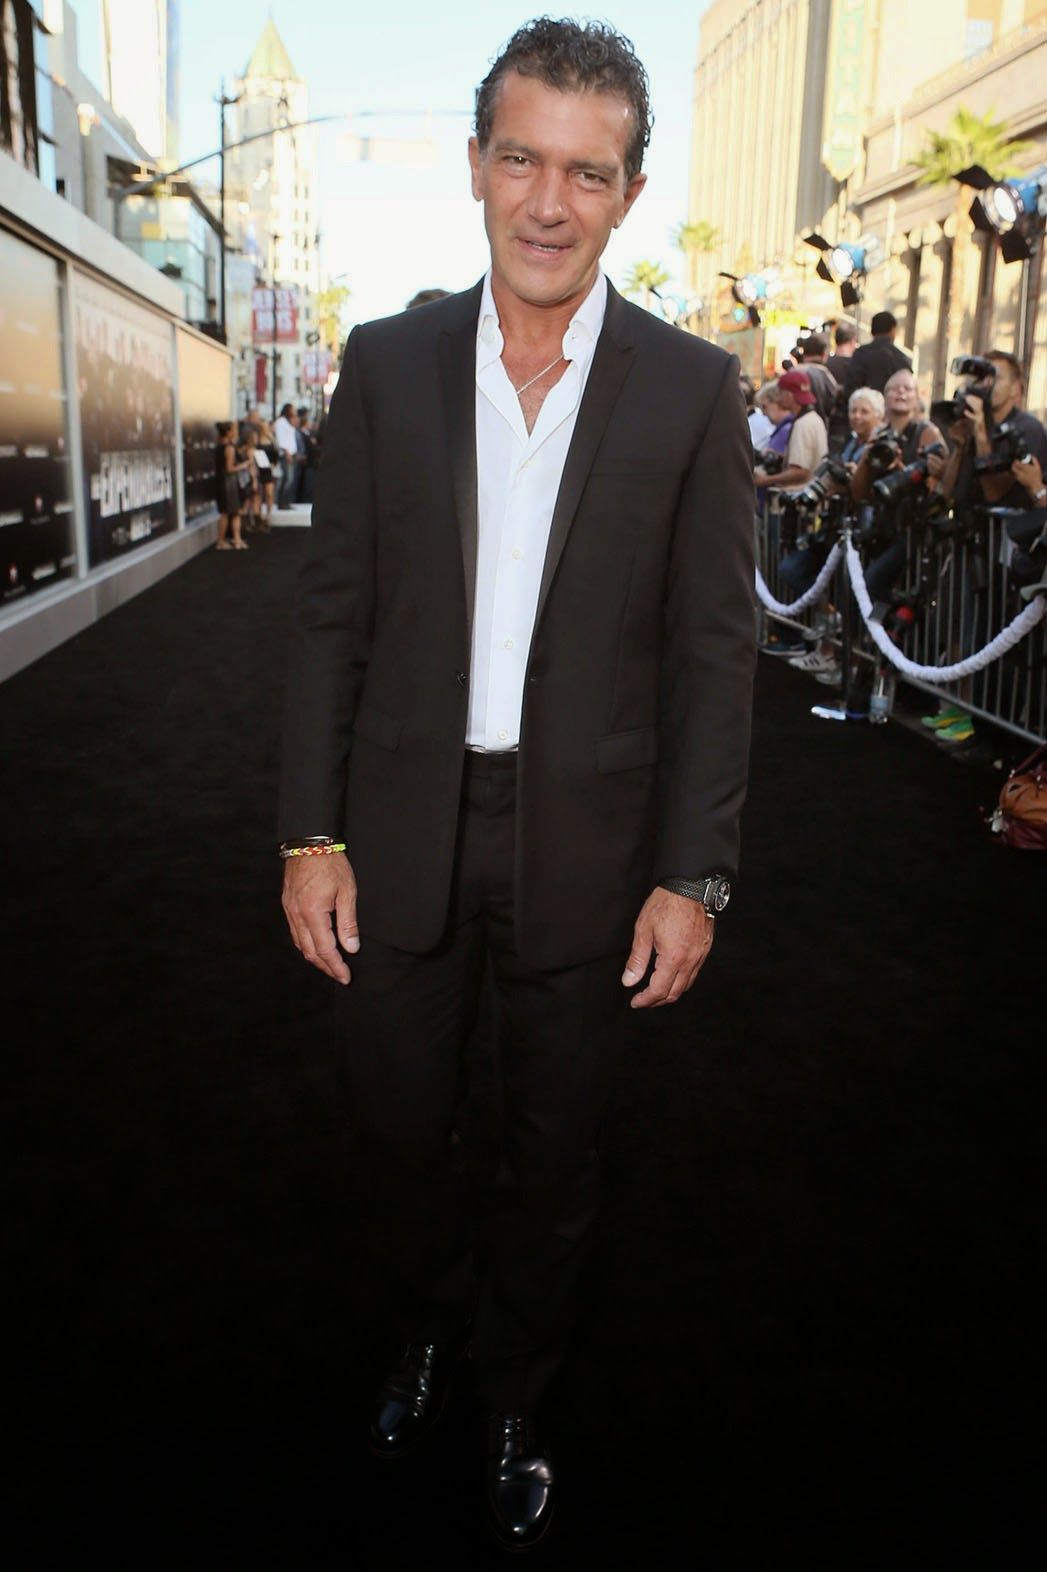 WIN Tickets to the Expendables premiere forecast